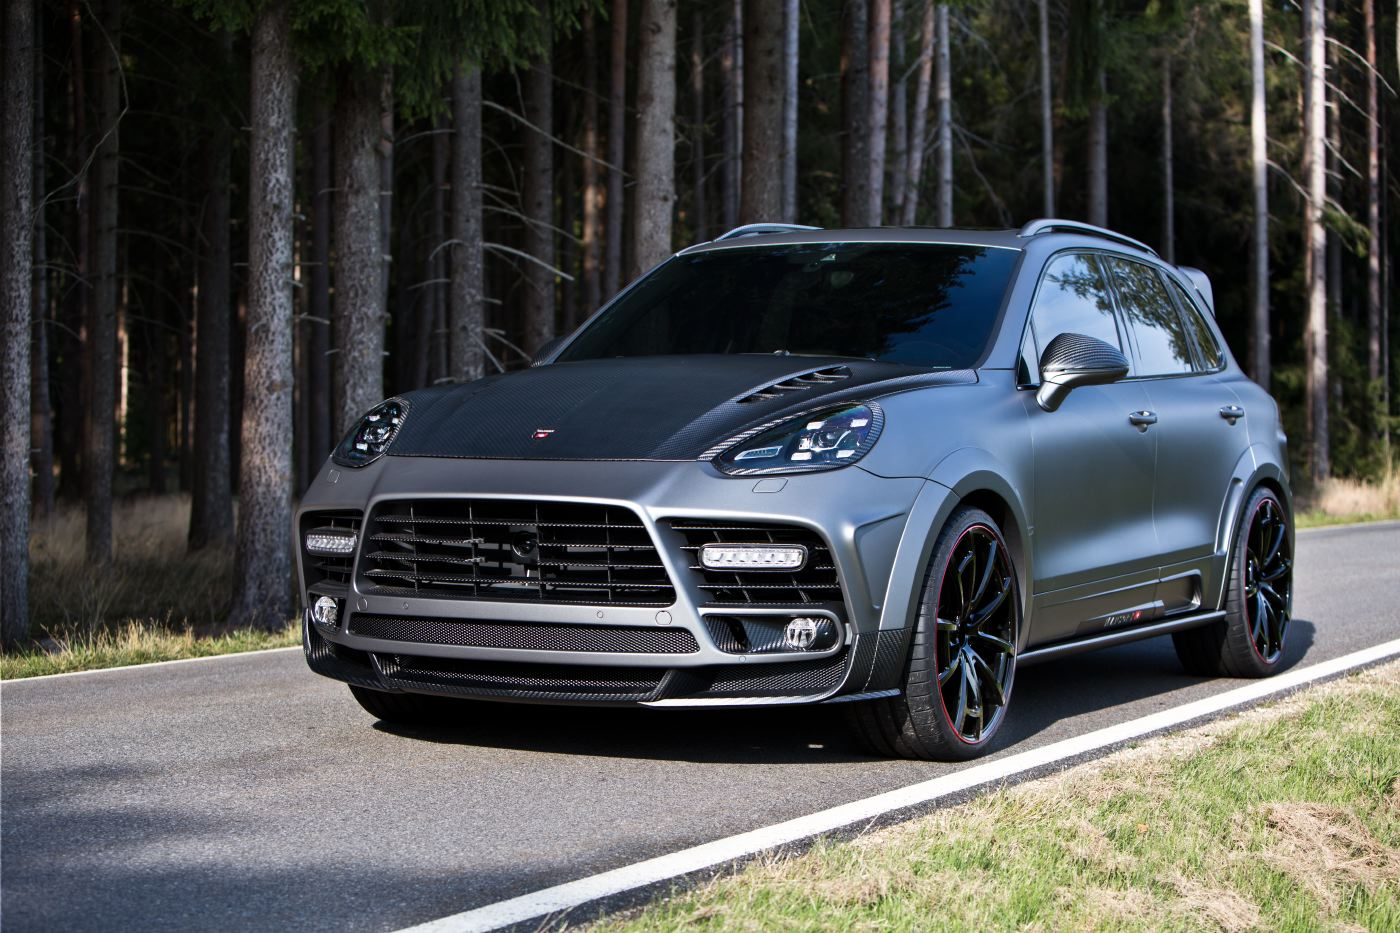 Home Tuning News Mansory Official: Mansory Porsche Cayenne Turbo